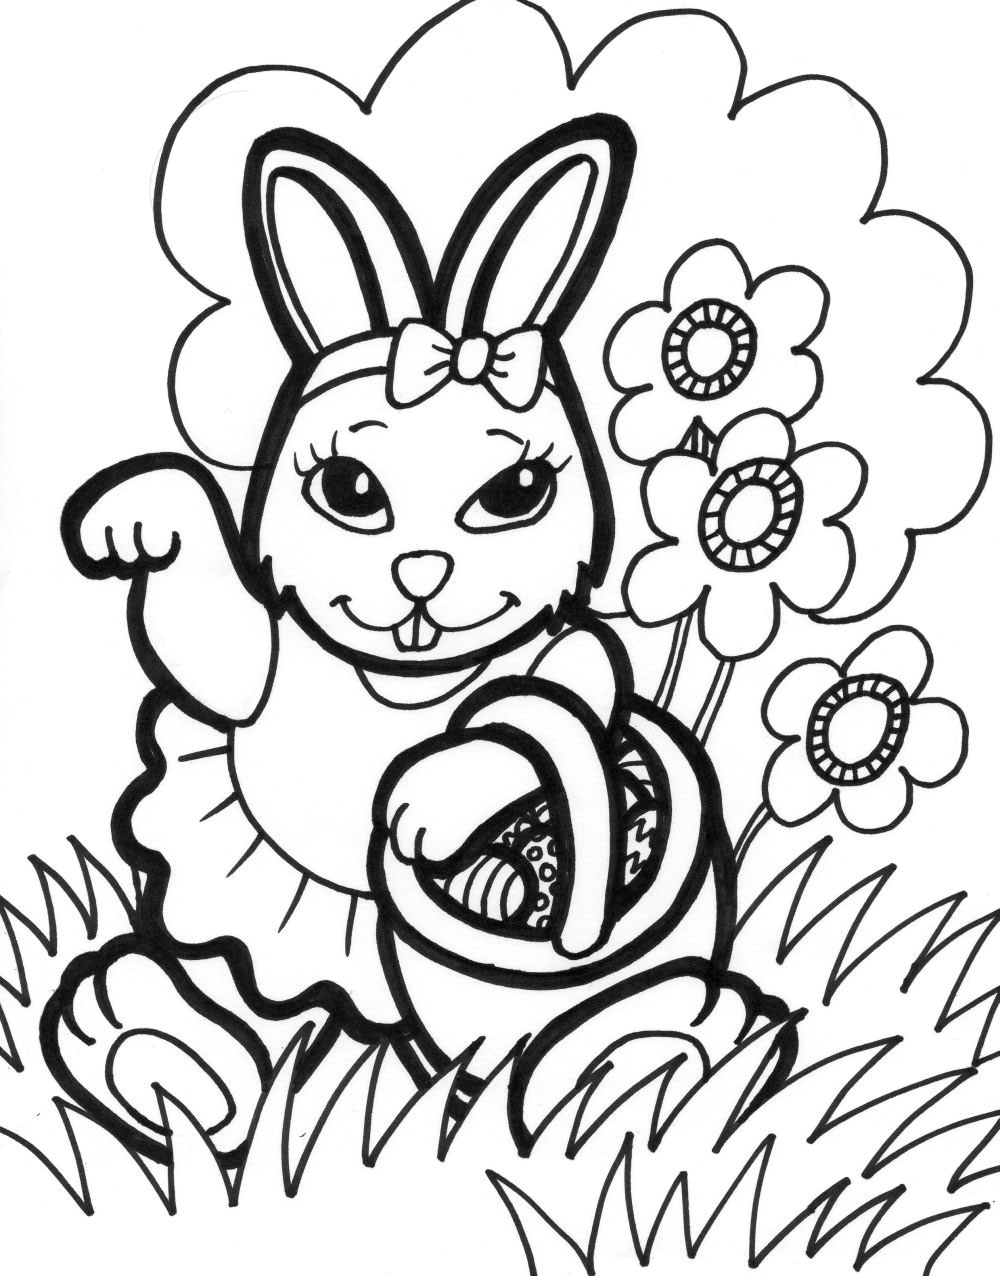 Free printable coloring pages rabbits - Easter Bunny Printable Coloring Pages